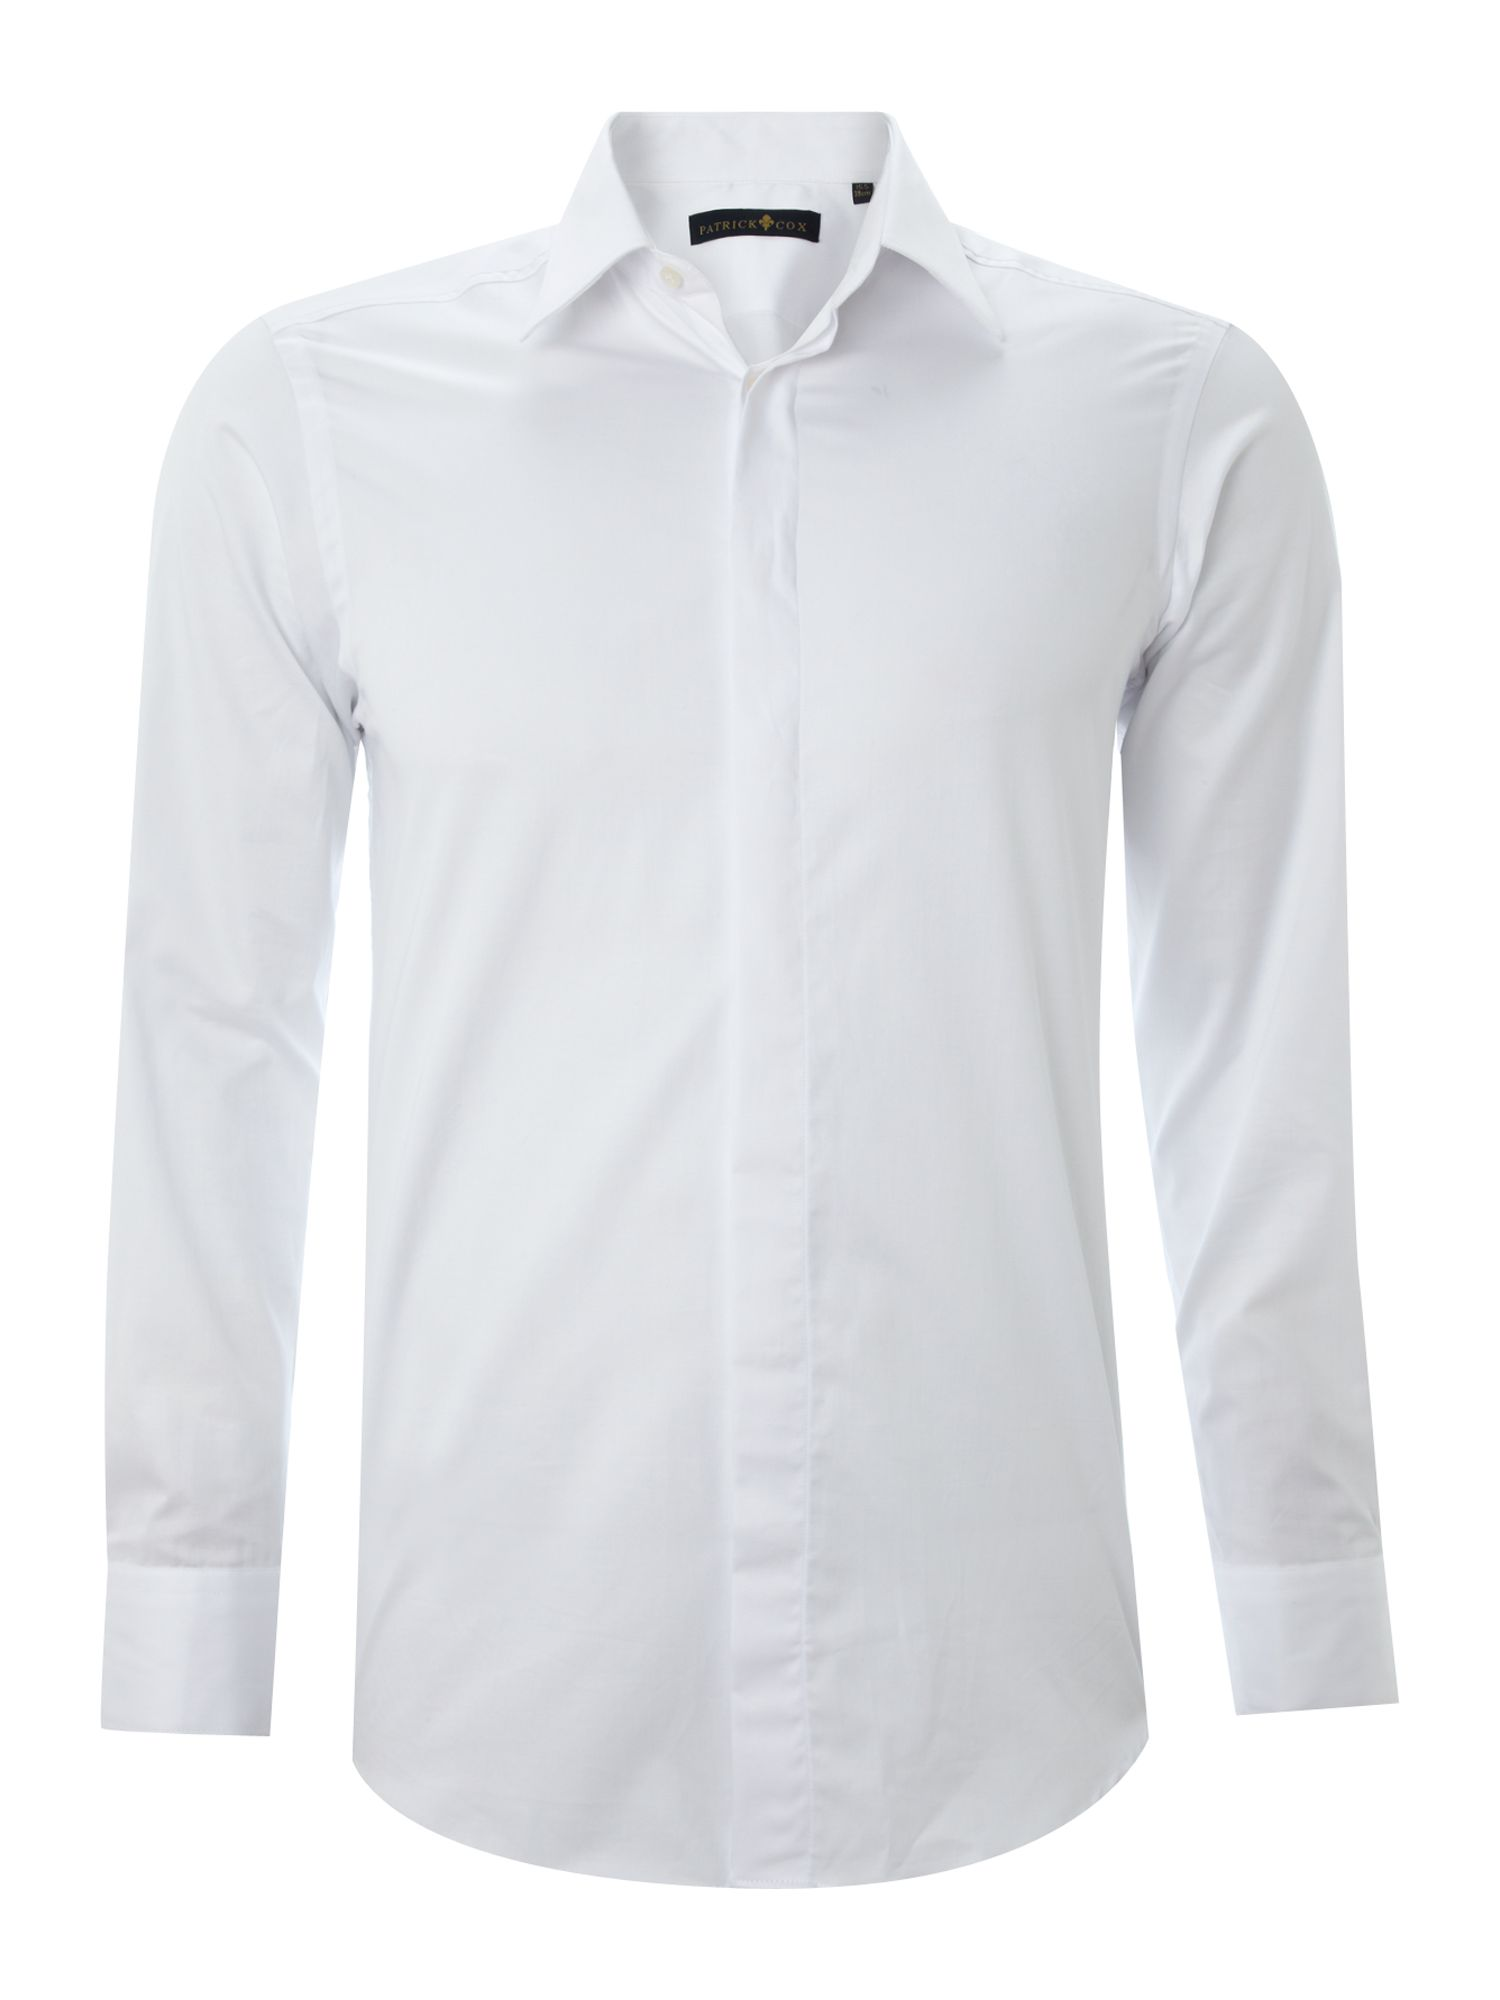 Lyst patrick cox longsleeve plain poplin formal shirt in for Boys white formal shirt